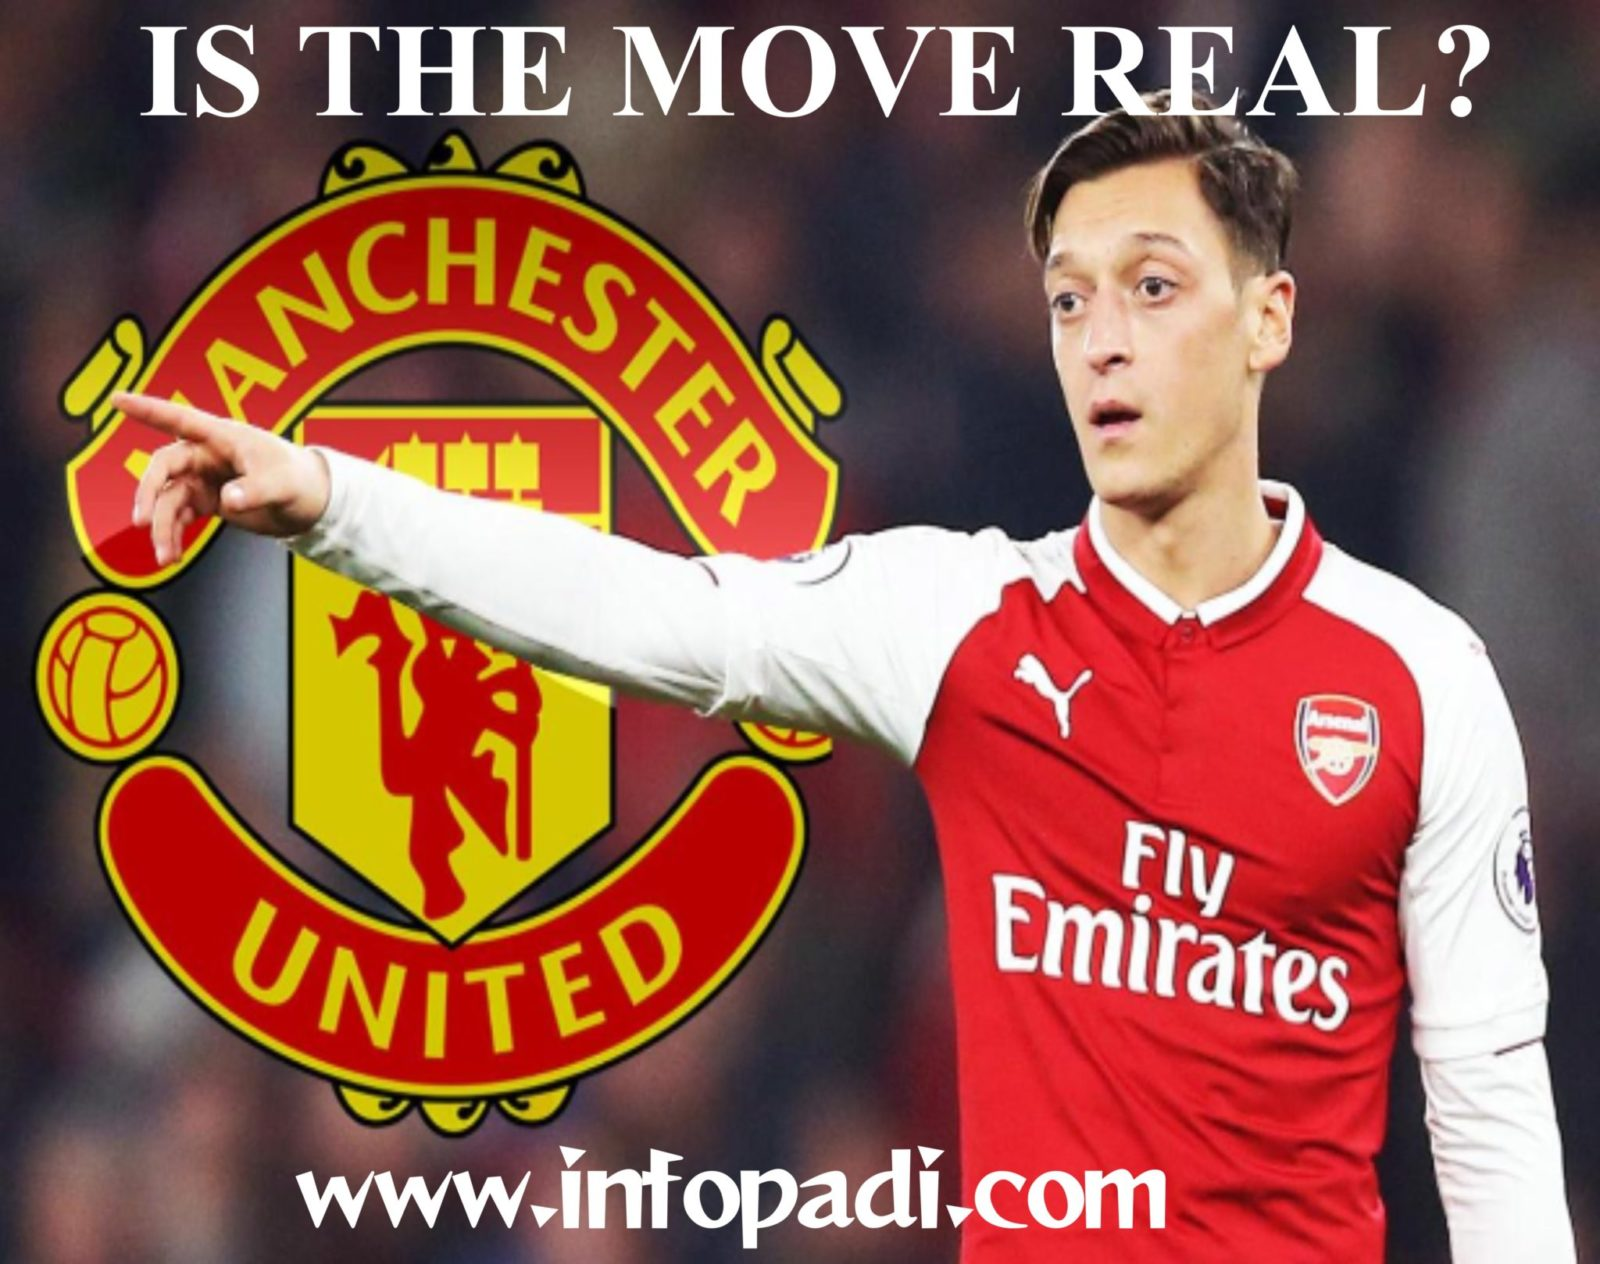 Ozil United Move- ₤35m OR FREE, OZIL WILL BE A MAJOR COUP FOR MAN UNITED